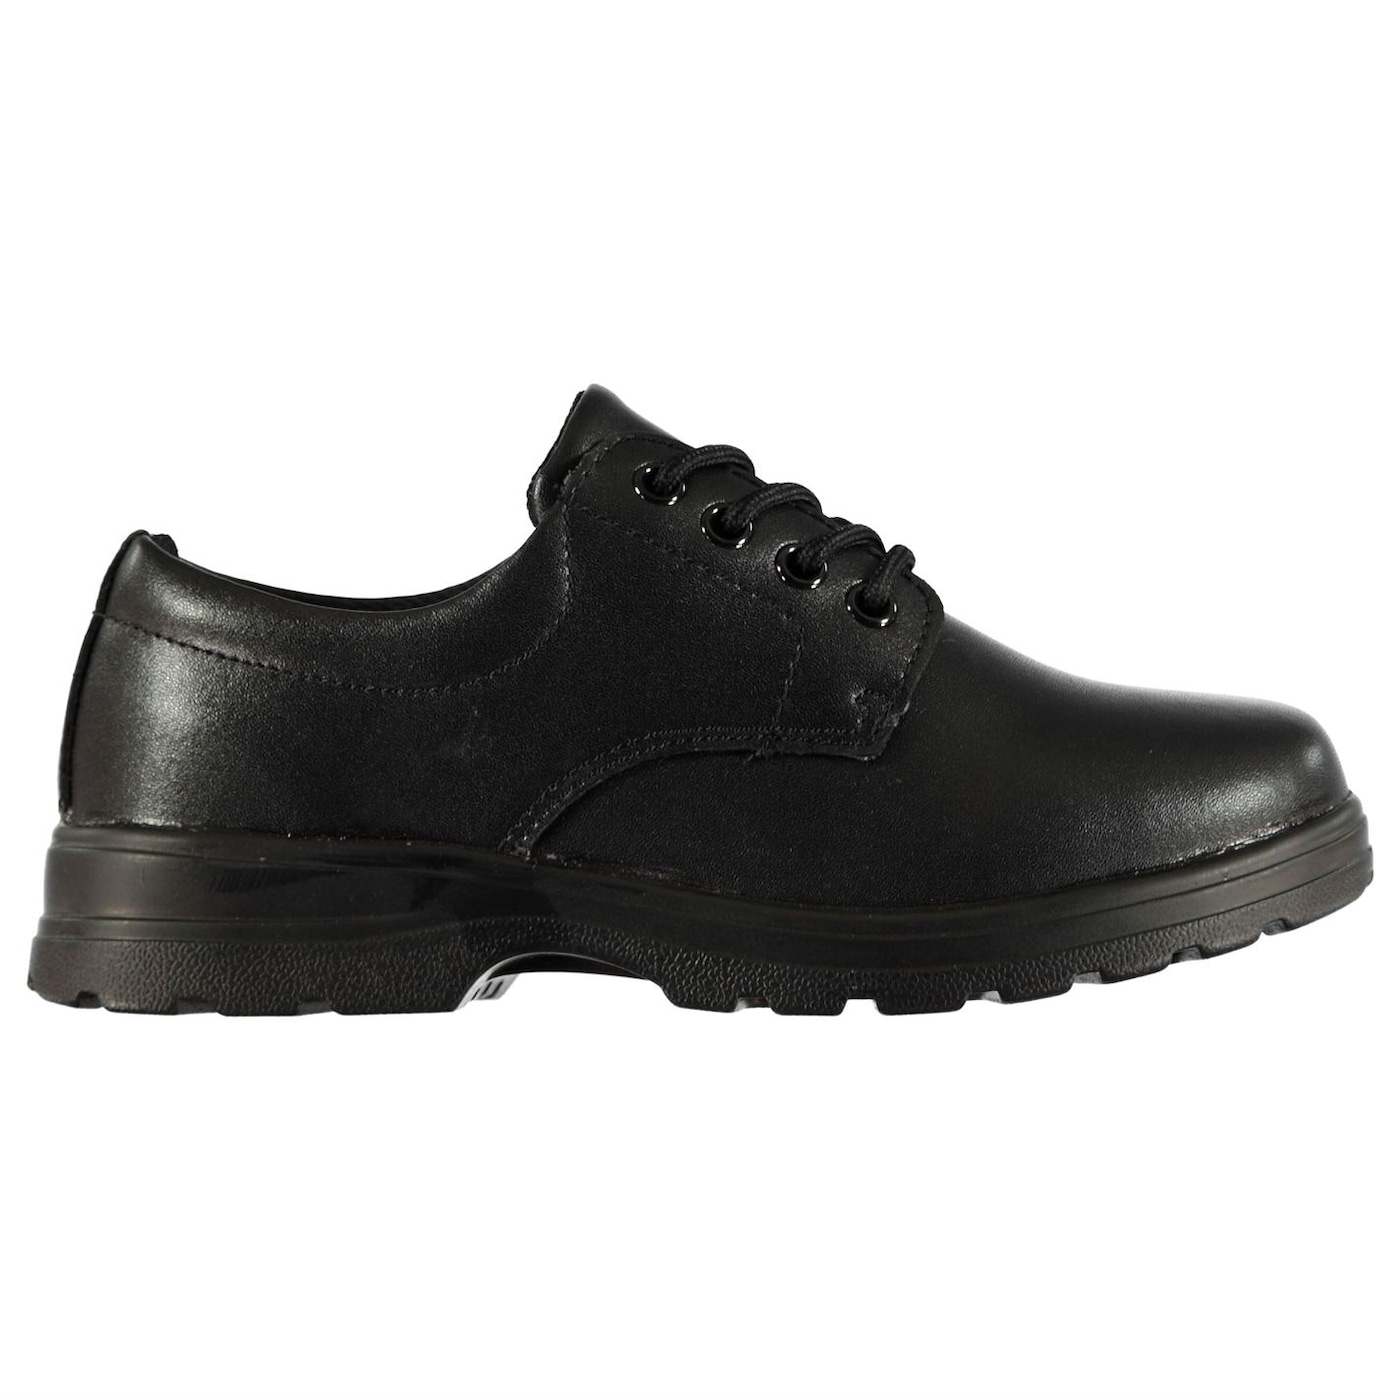 Lee Cooper Leather Derby Childrens Shoes